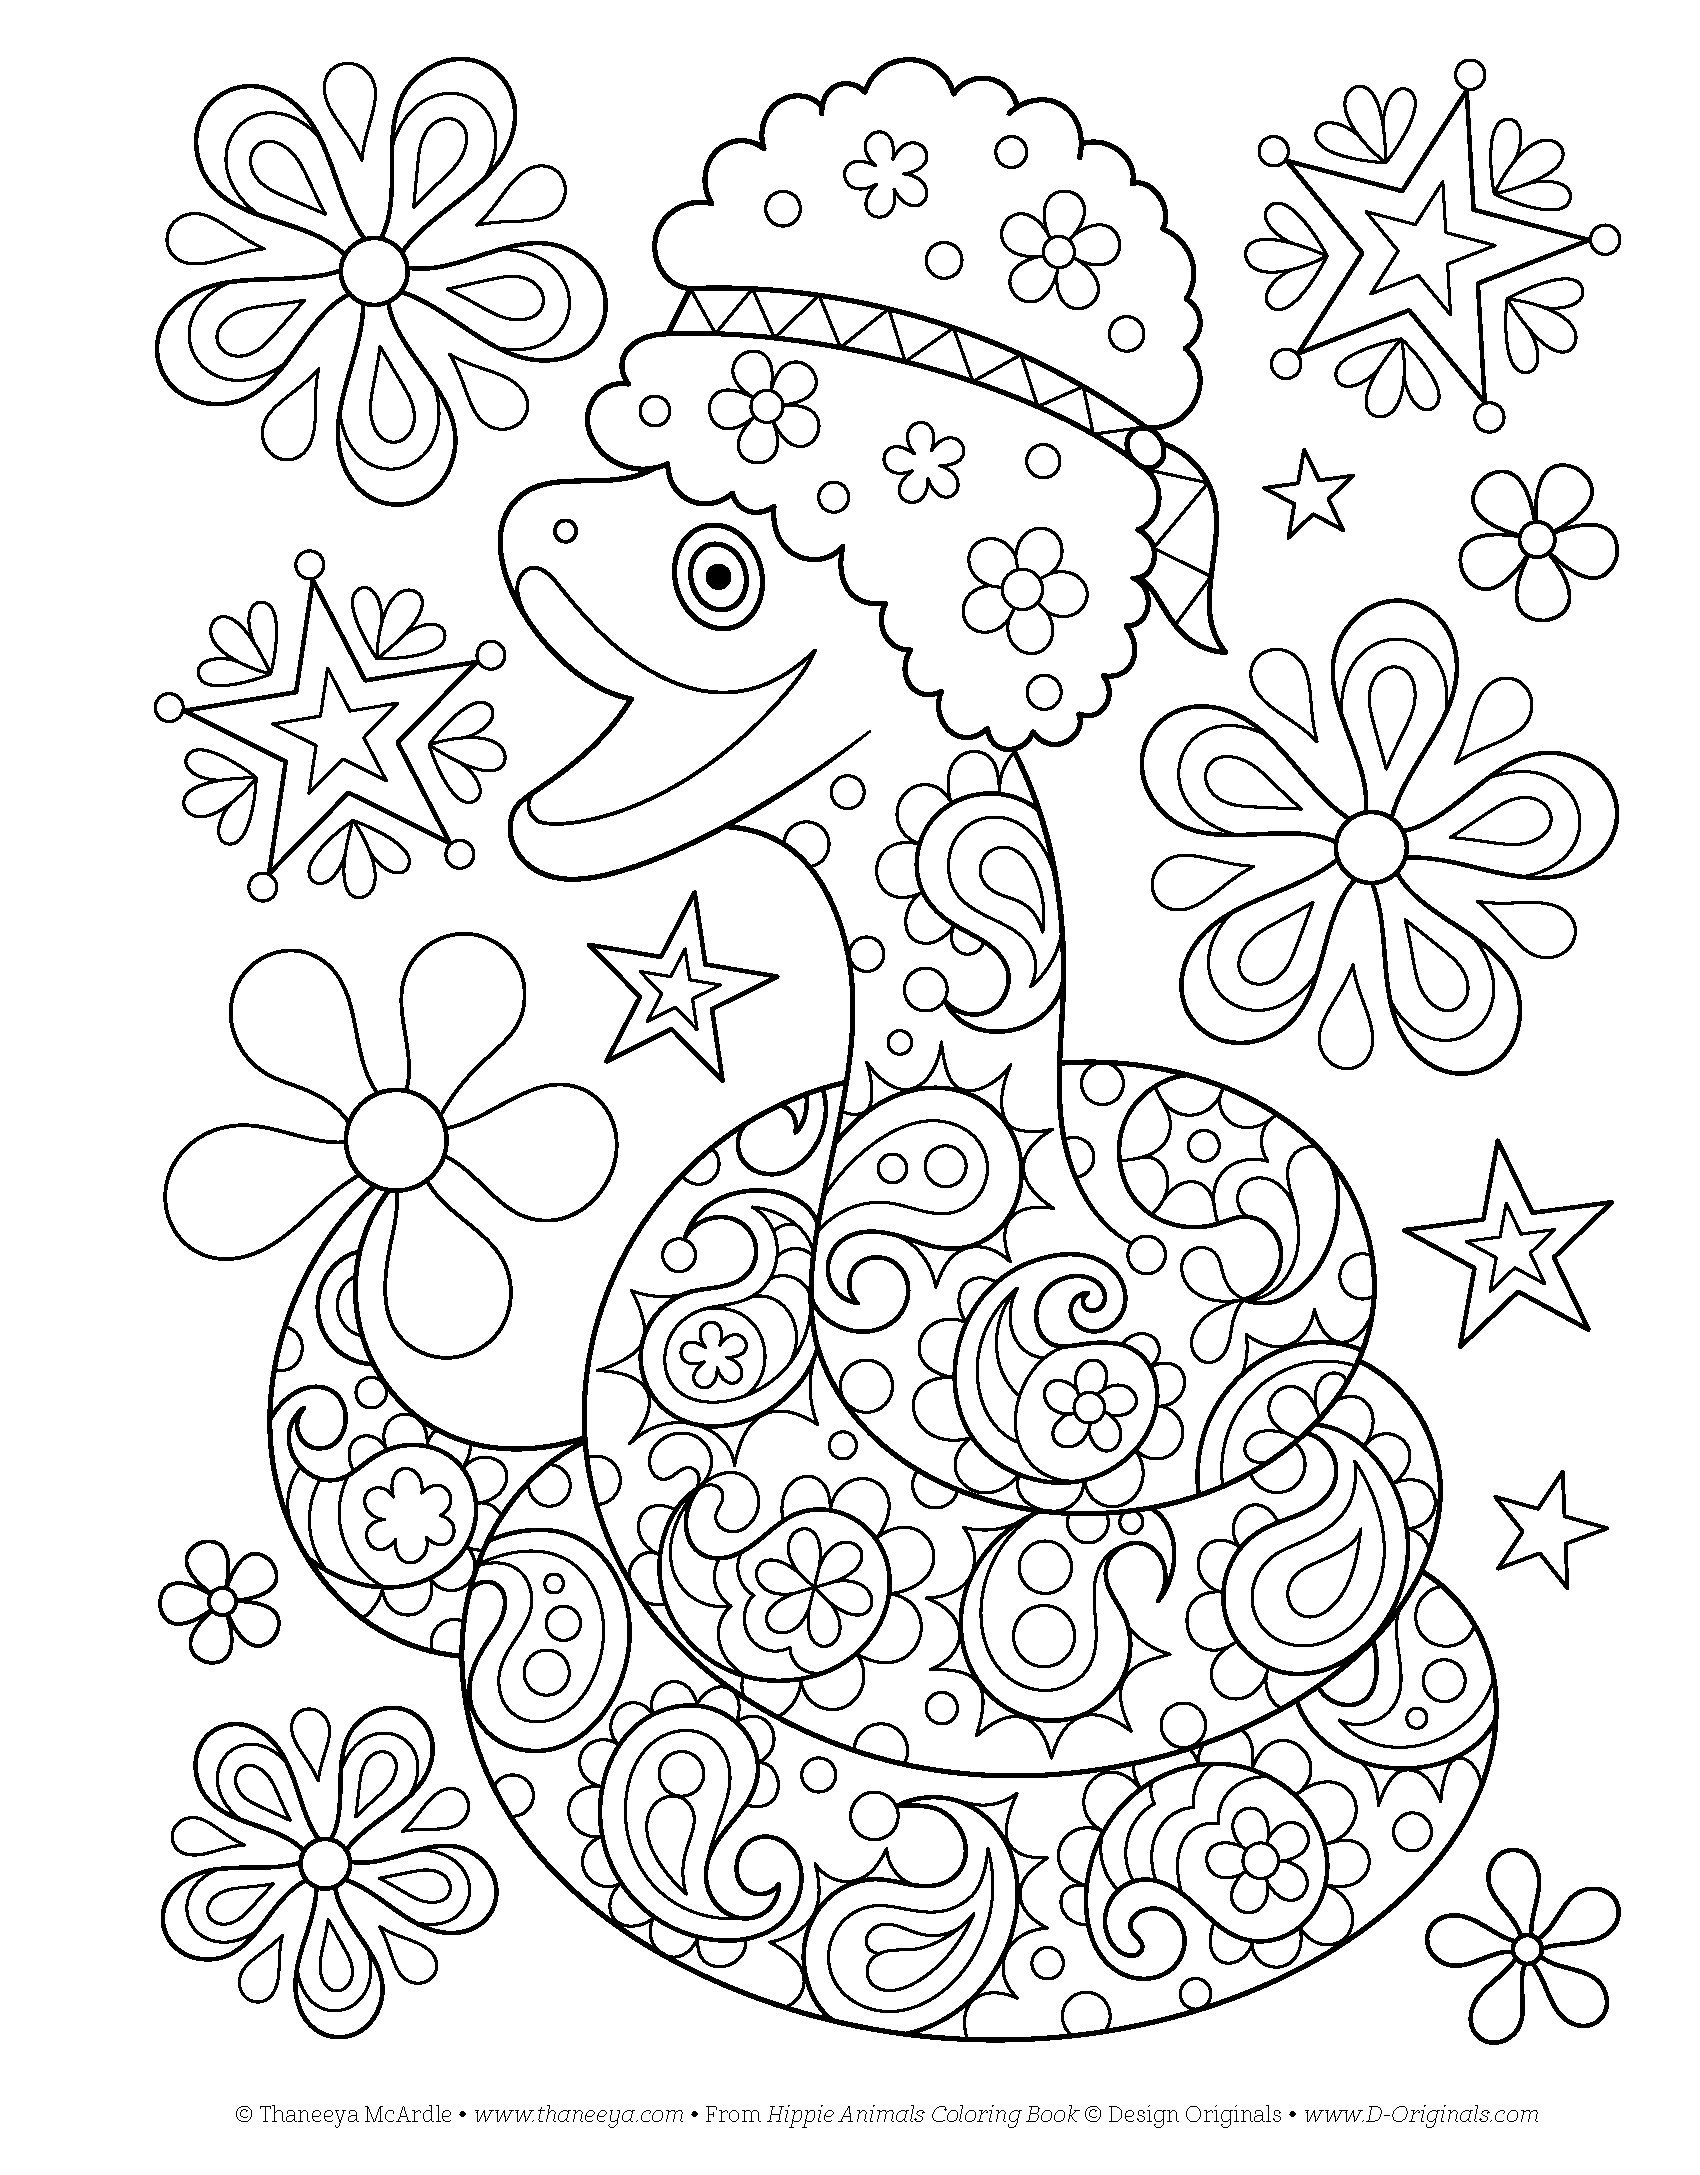 Buy Hippie Animals Coloring Book Is Fun Online At Low Prices In India